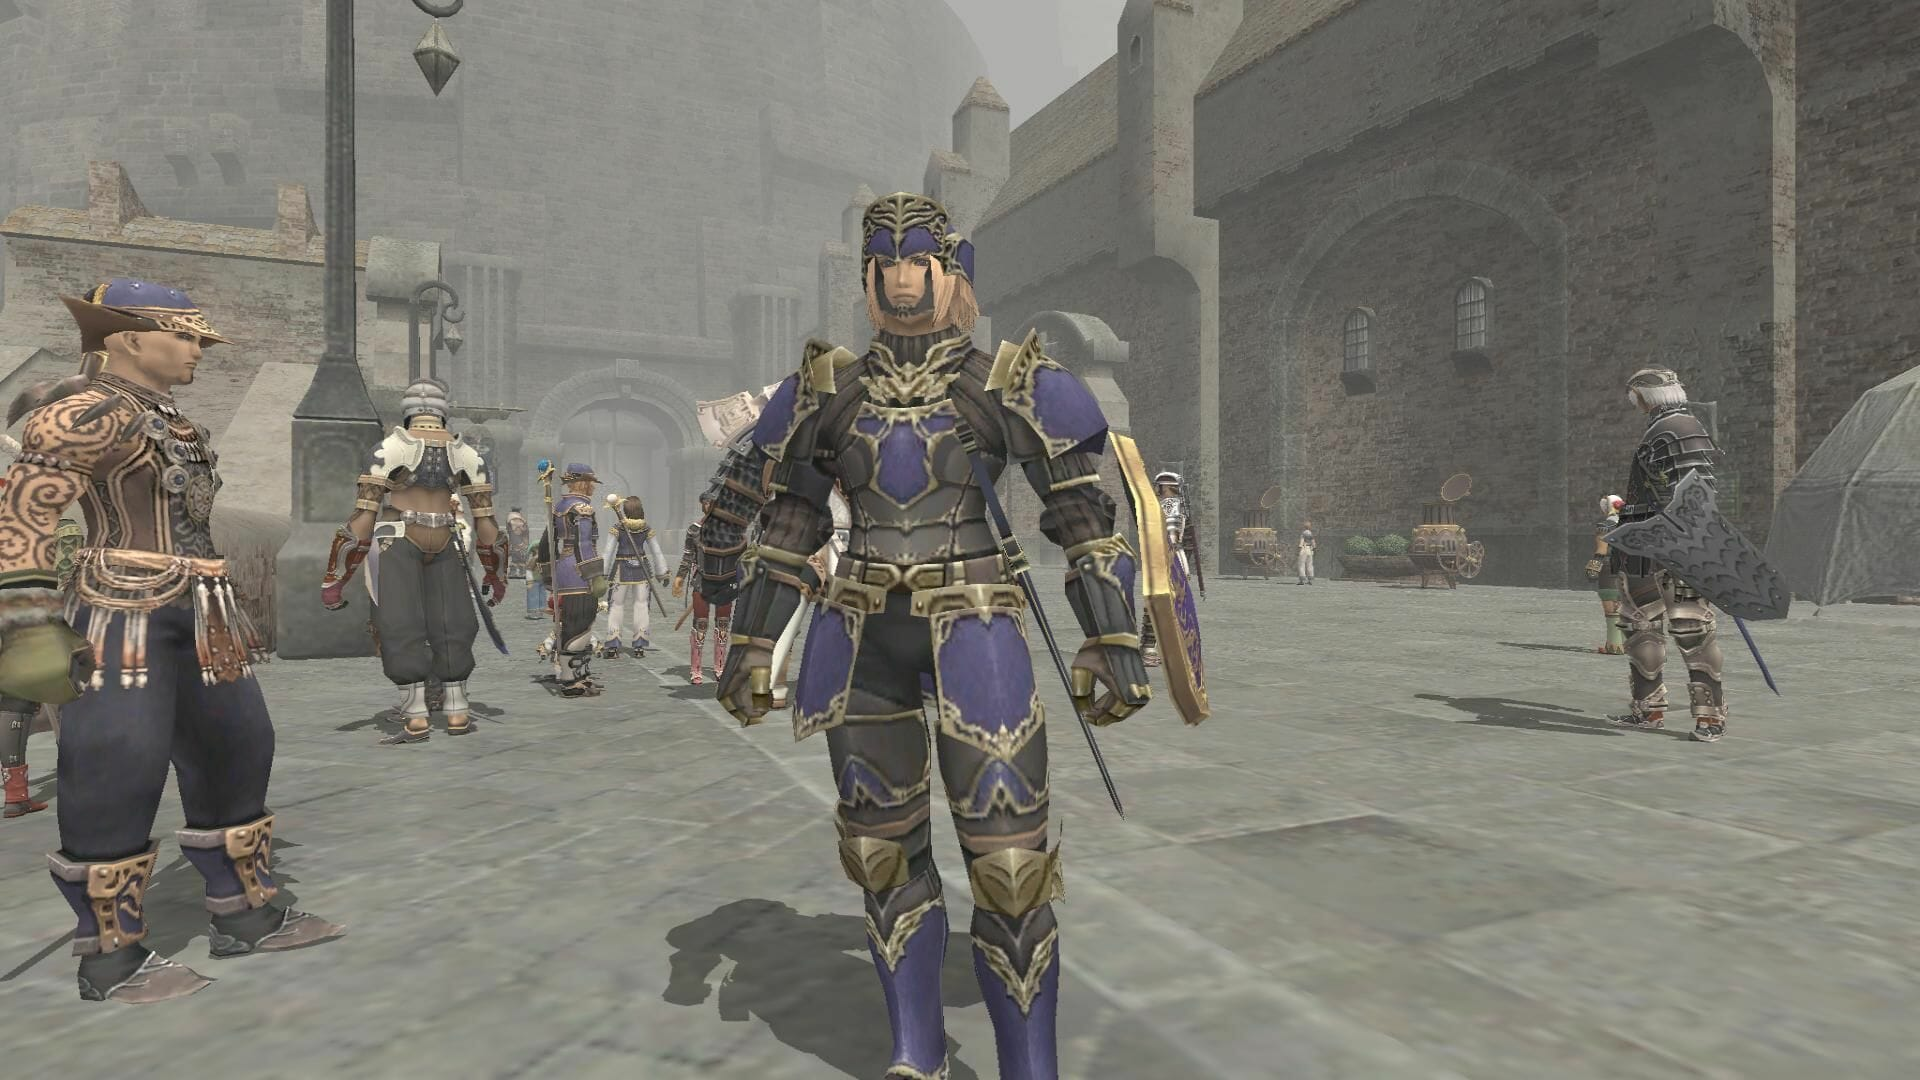 Final Fantasy XI September Update Continues The Voracious Resurgence Storyline